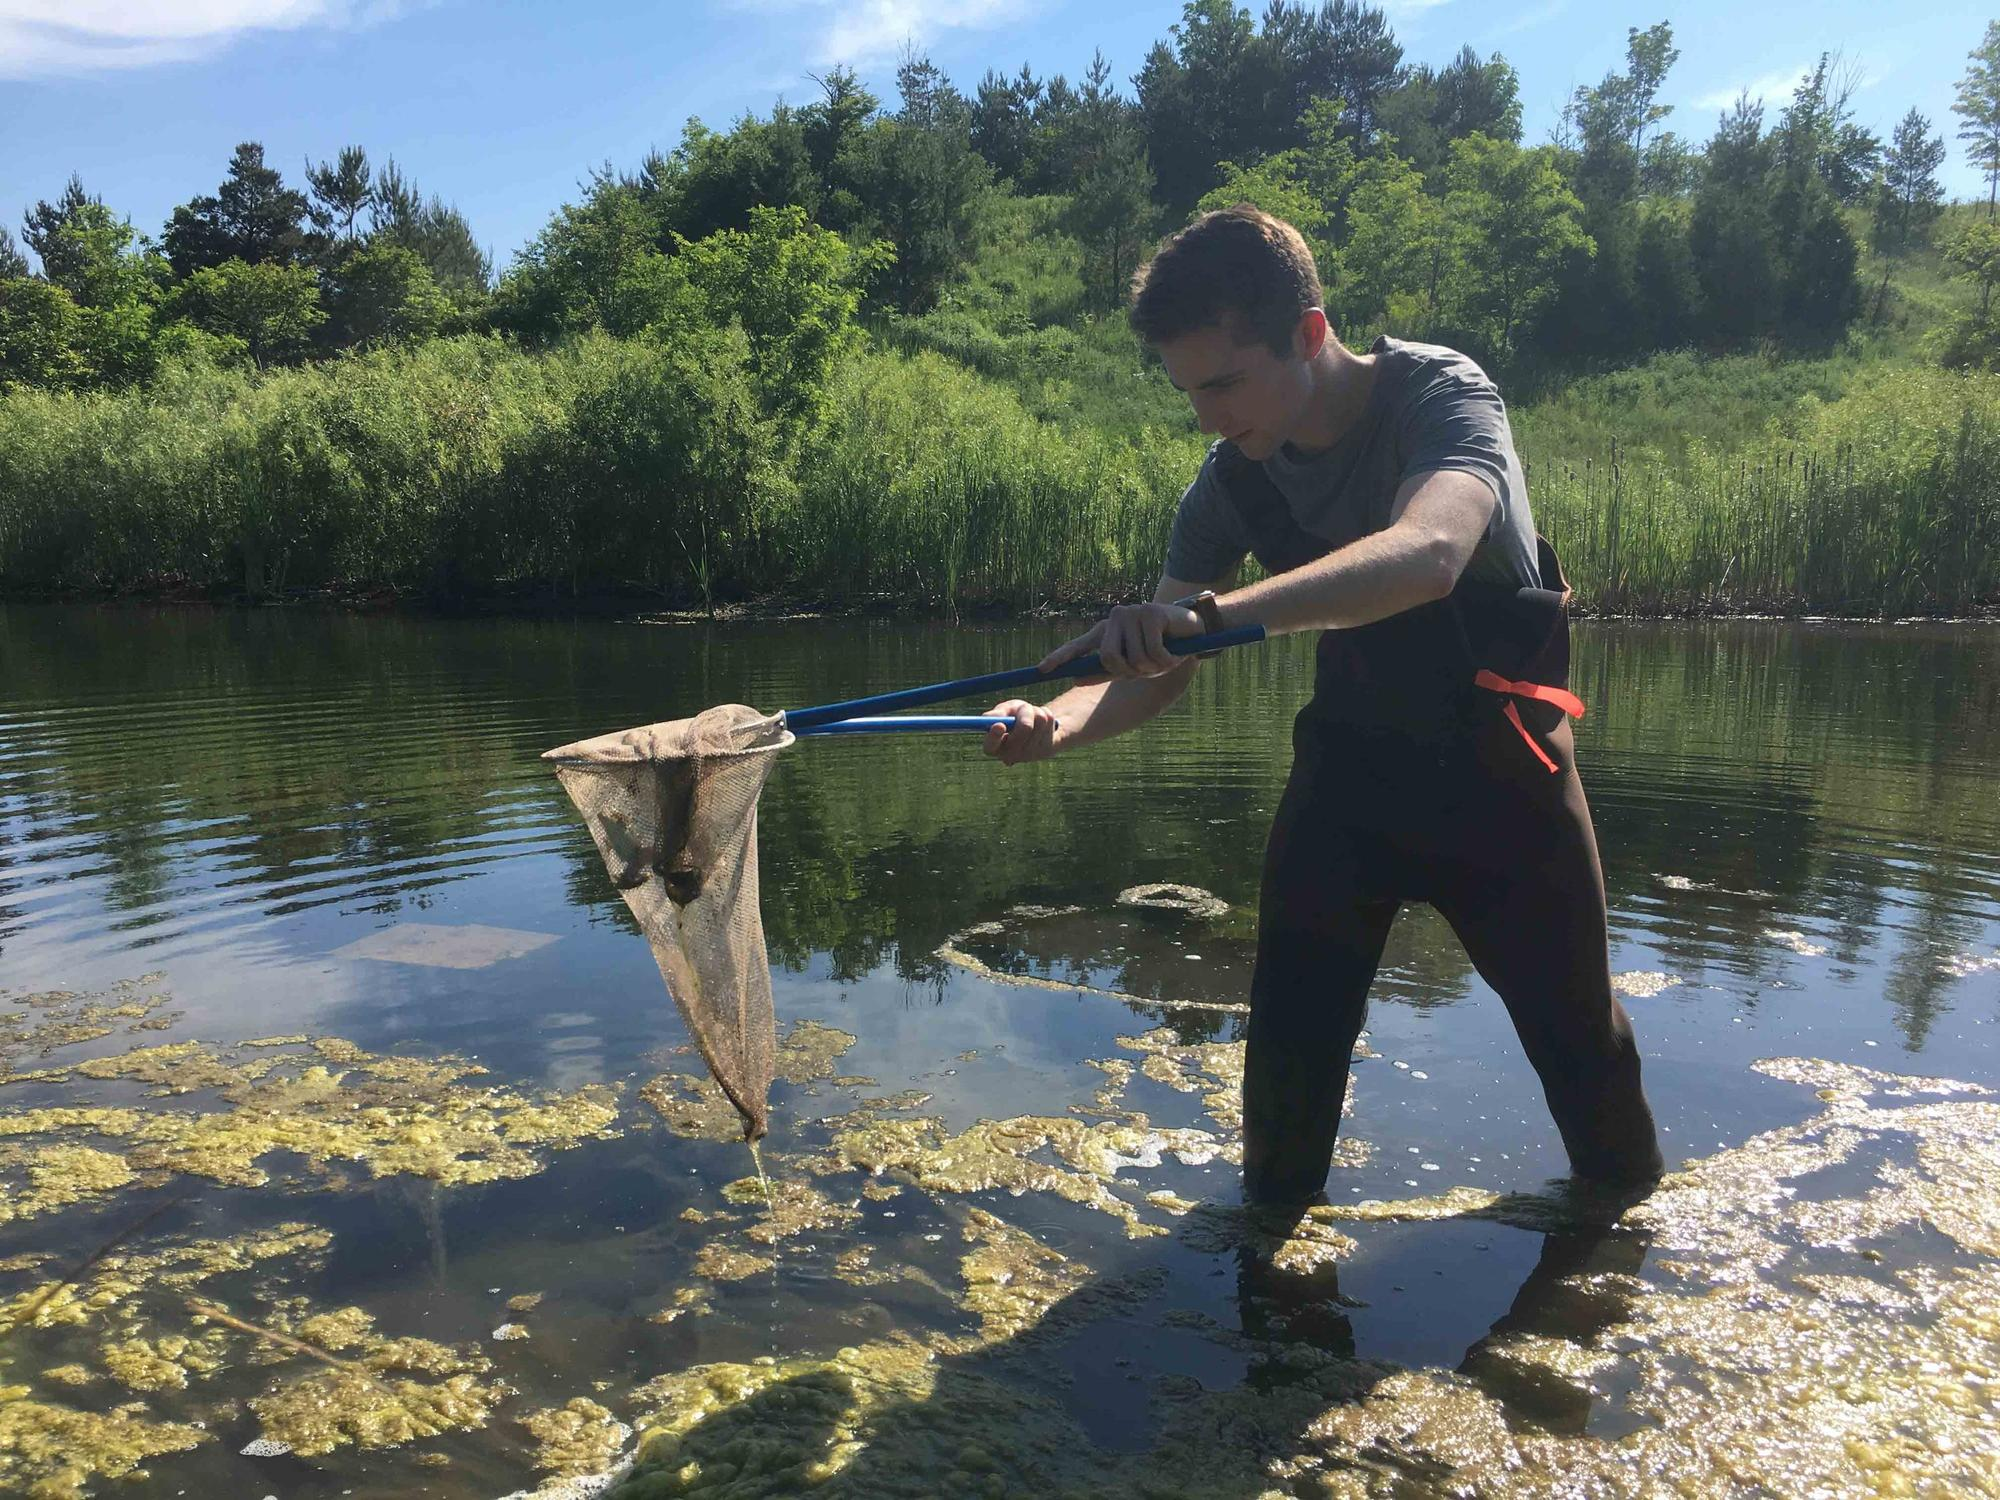 Student catching amphibian with a net